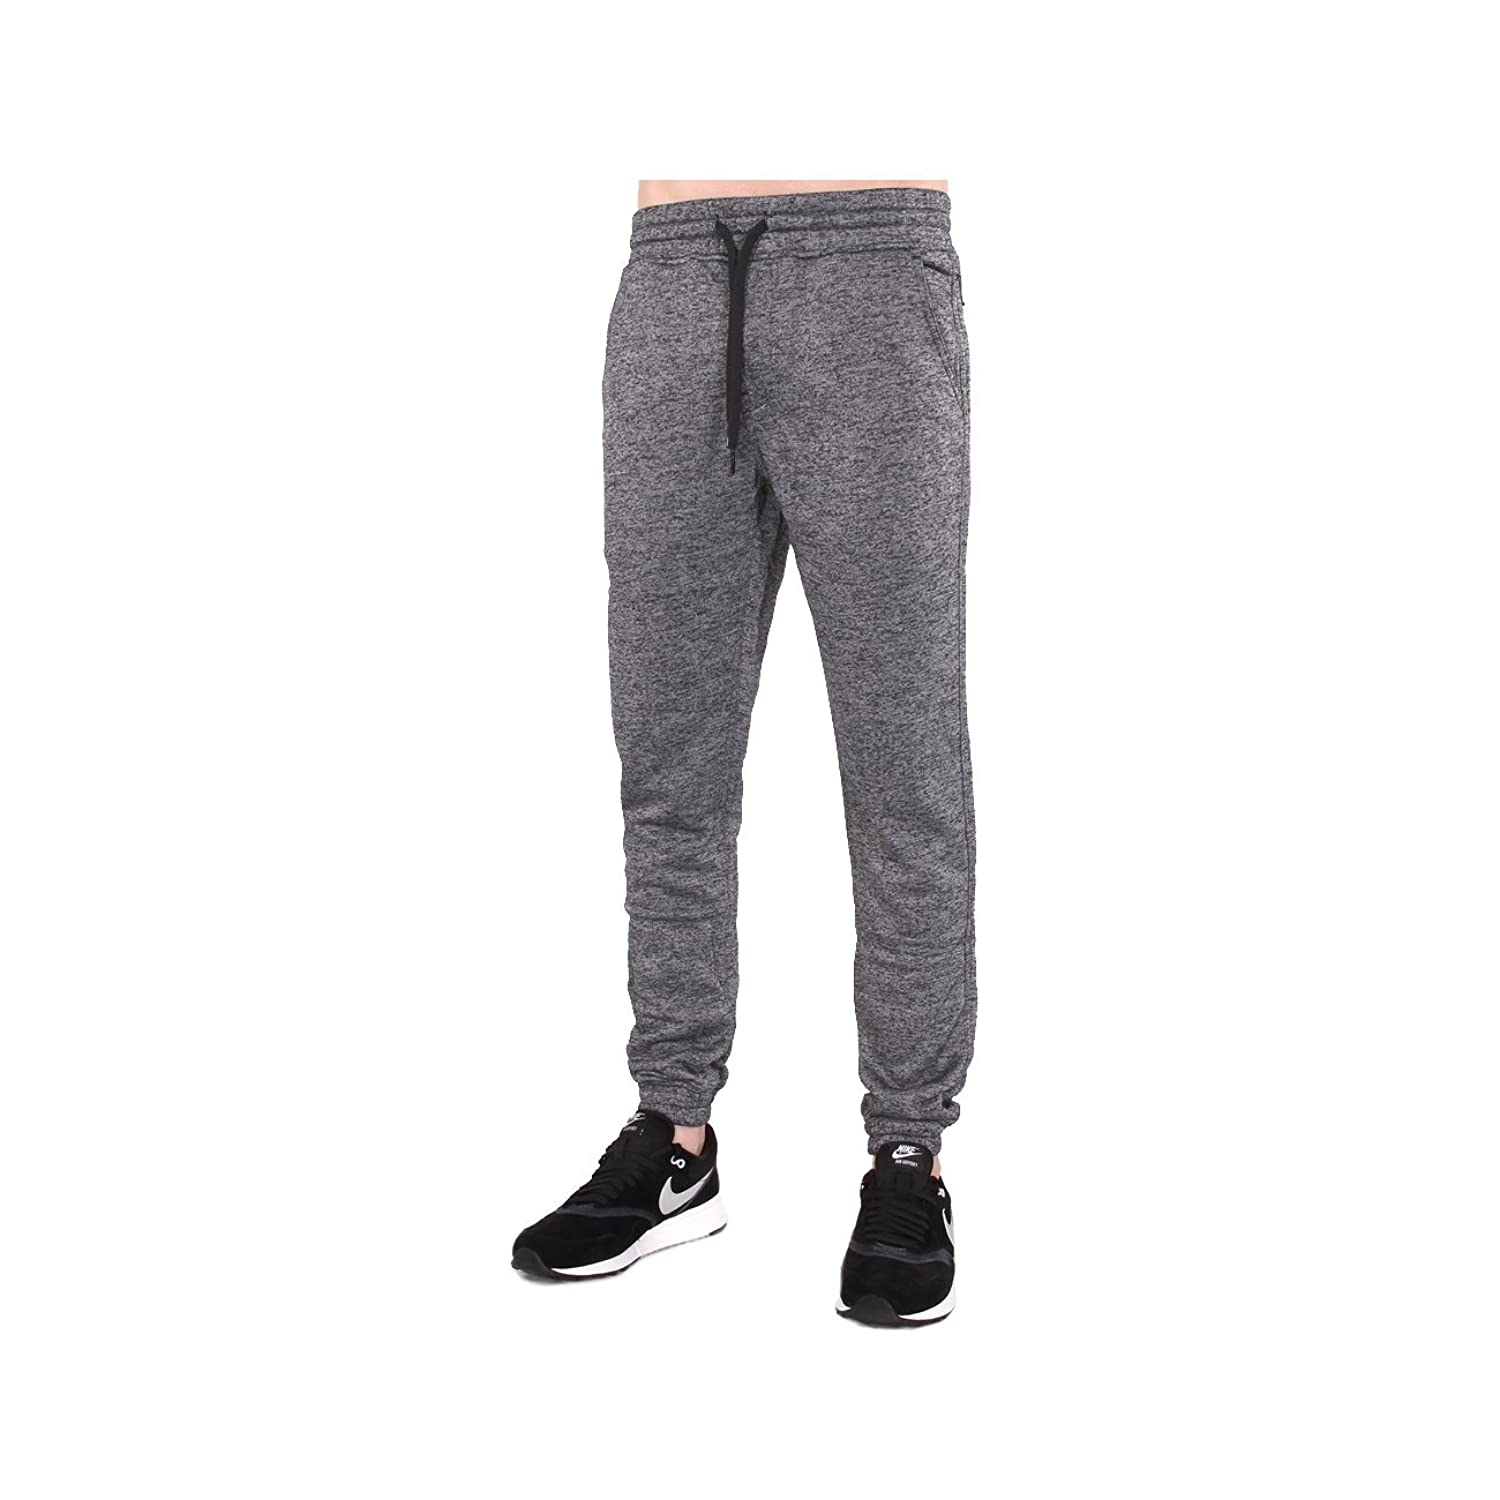 Fairplay Richie Jogger Pant Black